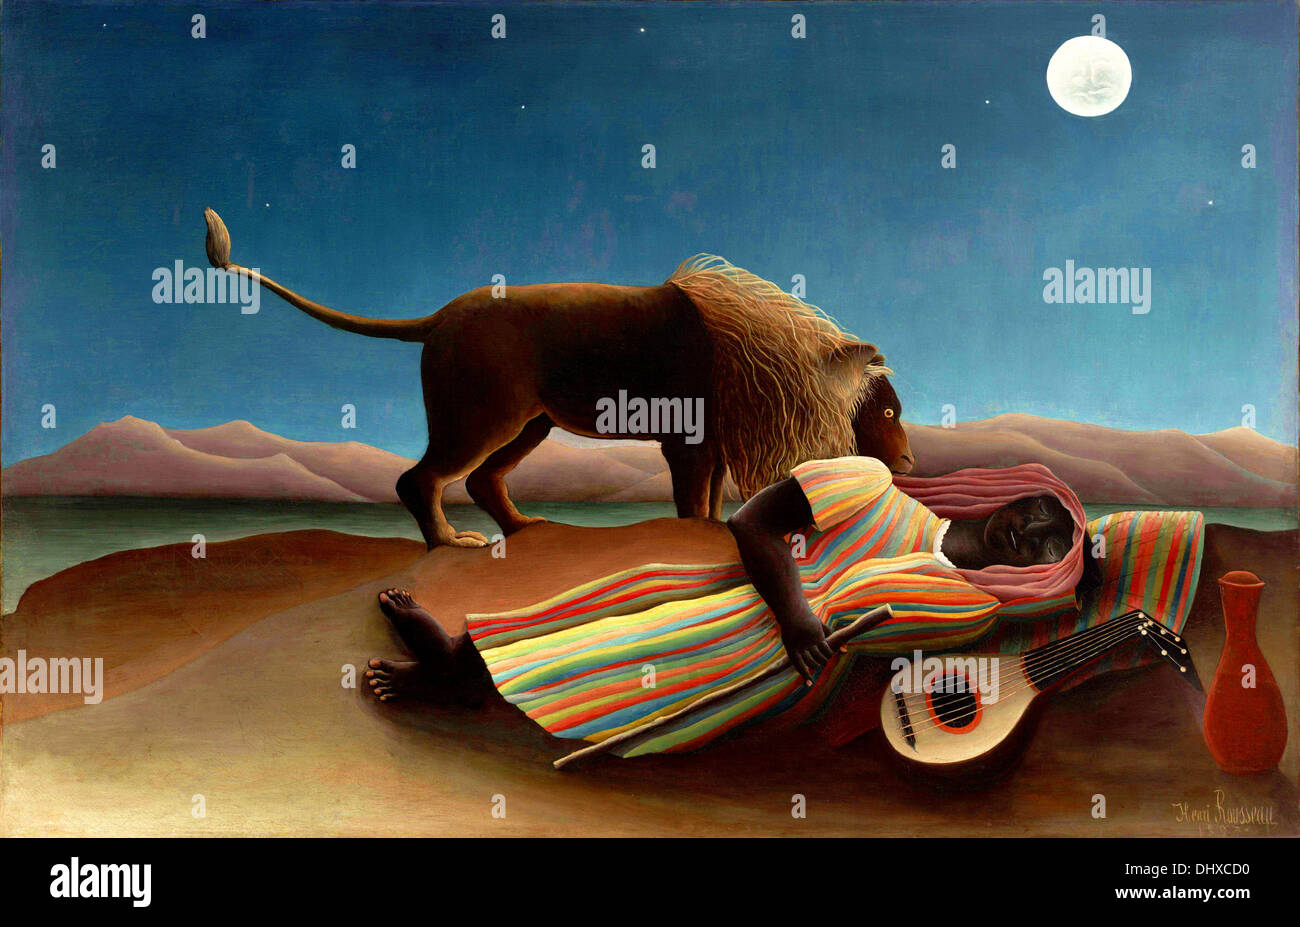 The Sleeping Gypsy  - by Henri Rousseau, 1897 - Stock Image